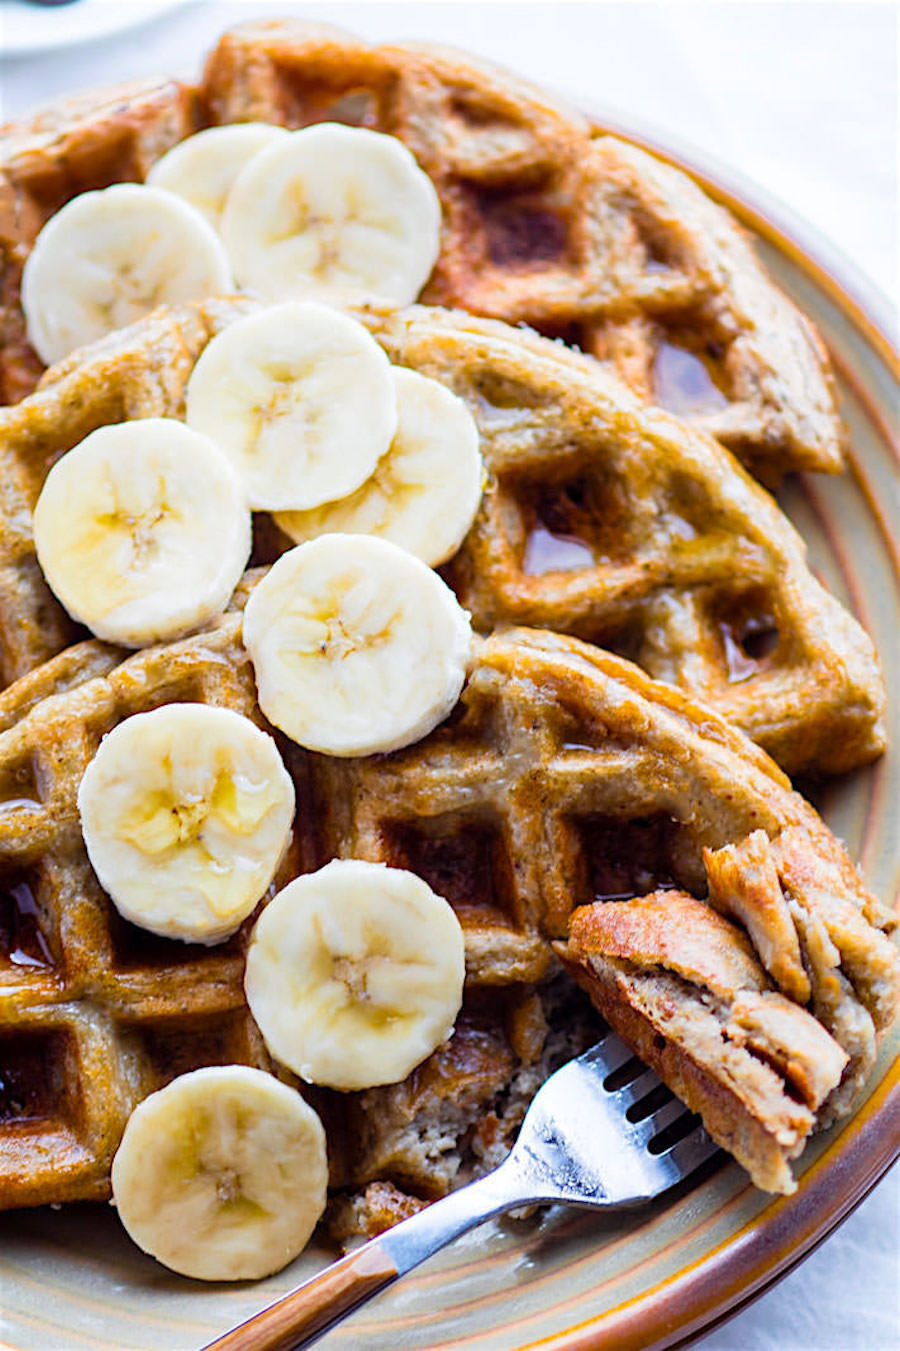 https://www.cottercrunch.com/blender-banana-rice-gluten-free-waffles-recipe/